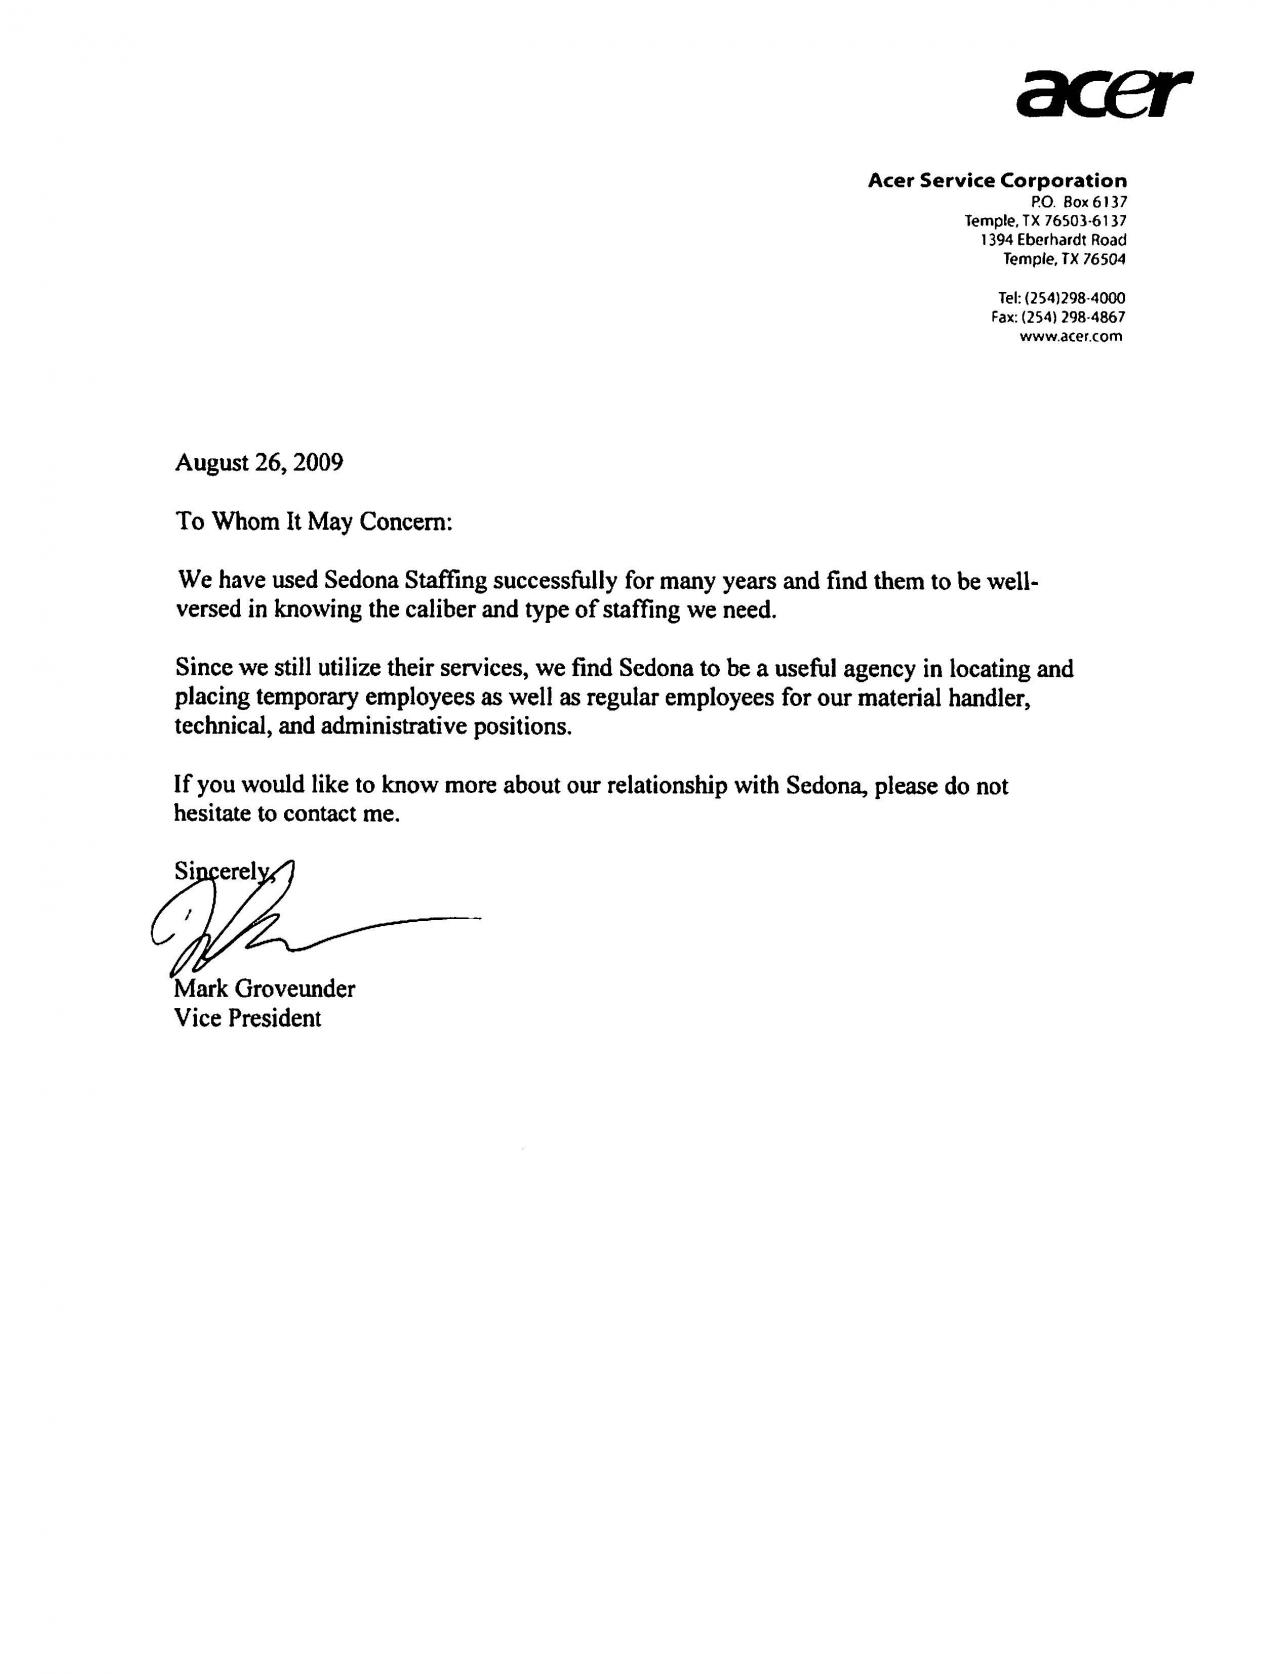 Customer Reference Letter Template - Reference Letter for Client Image Collections Letter format formal